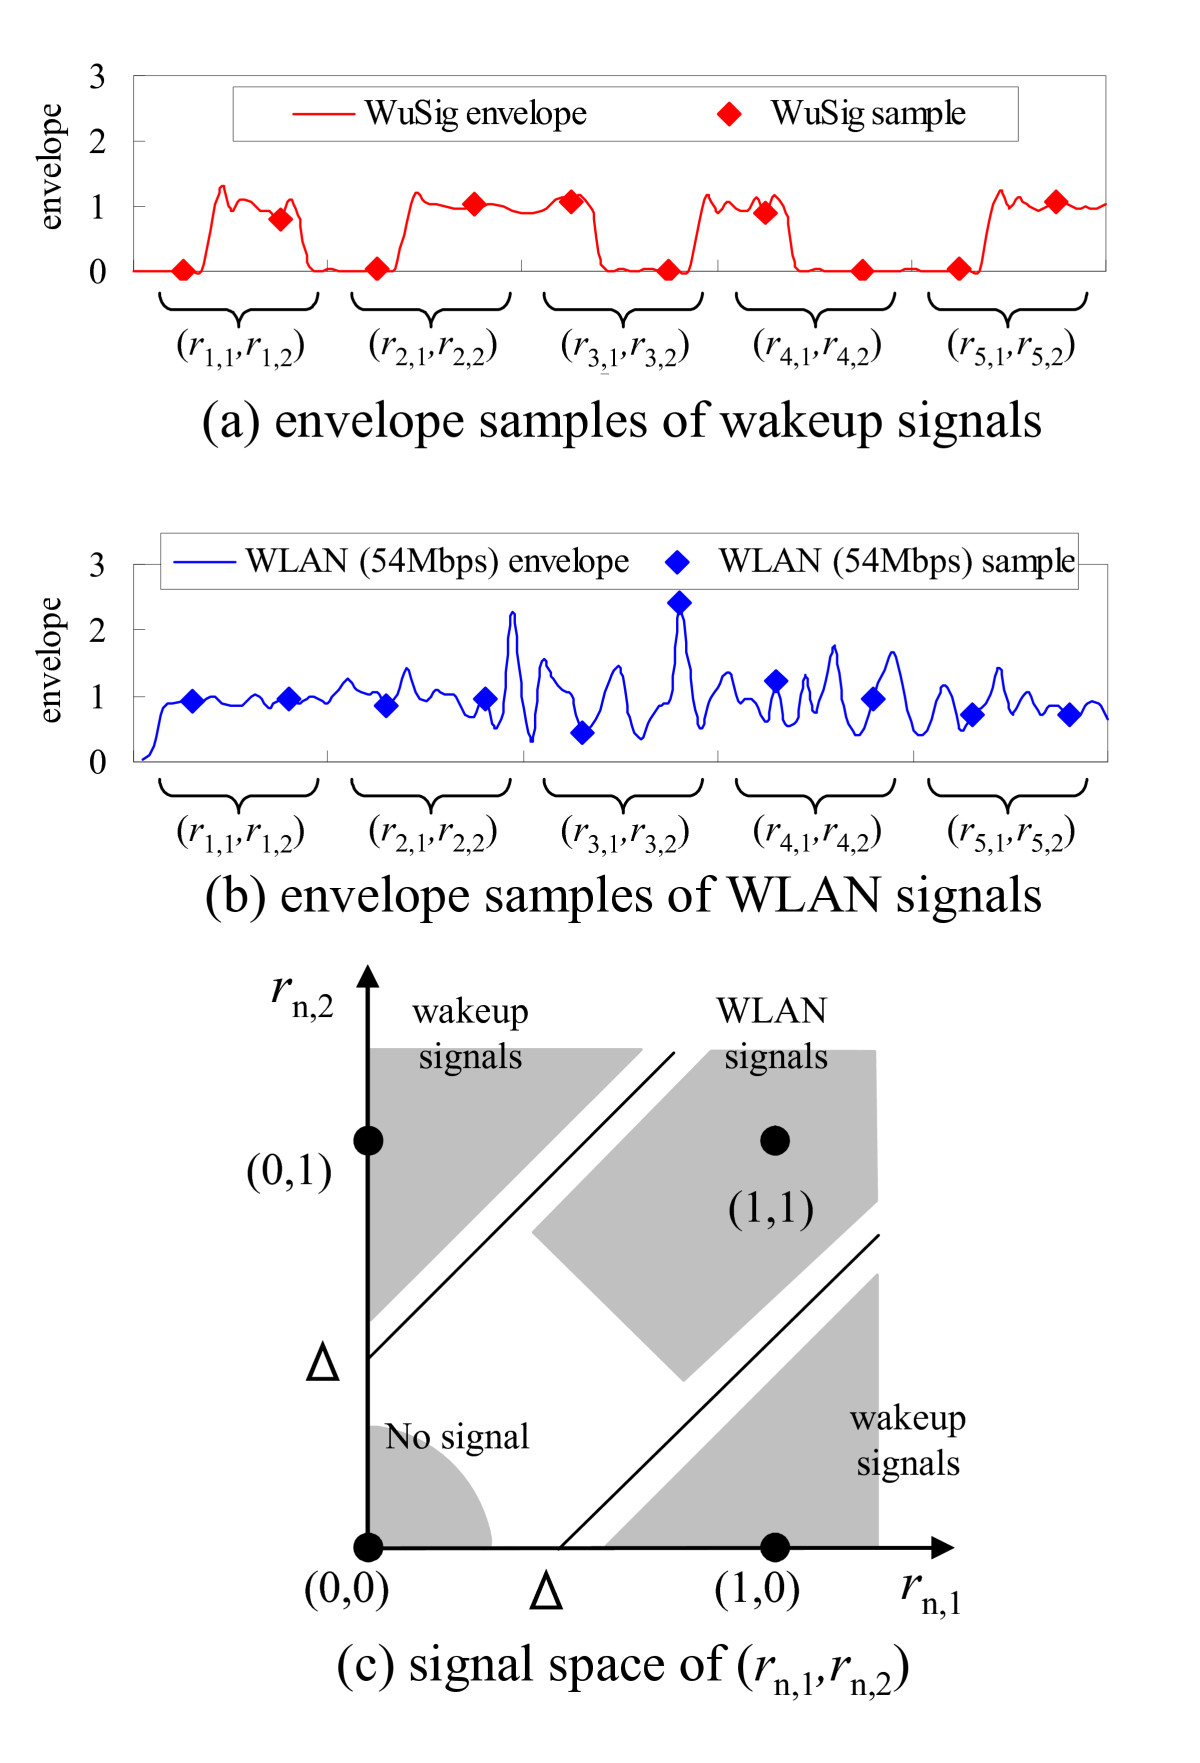 http://static-content.springer.com/image/art%3A10.1186%2F1687-1499-2012-42/MediaObjects/13638_2011_Article_254_Fig6_HTML.jpg